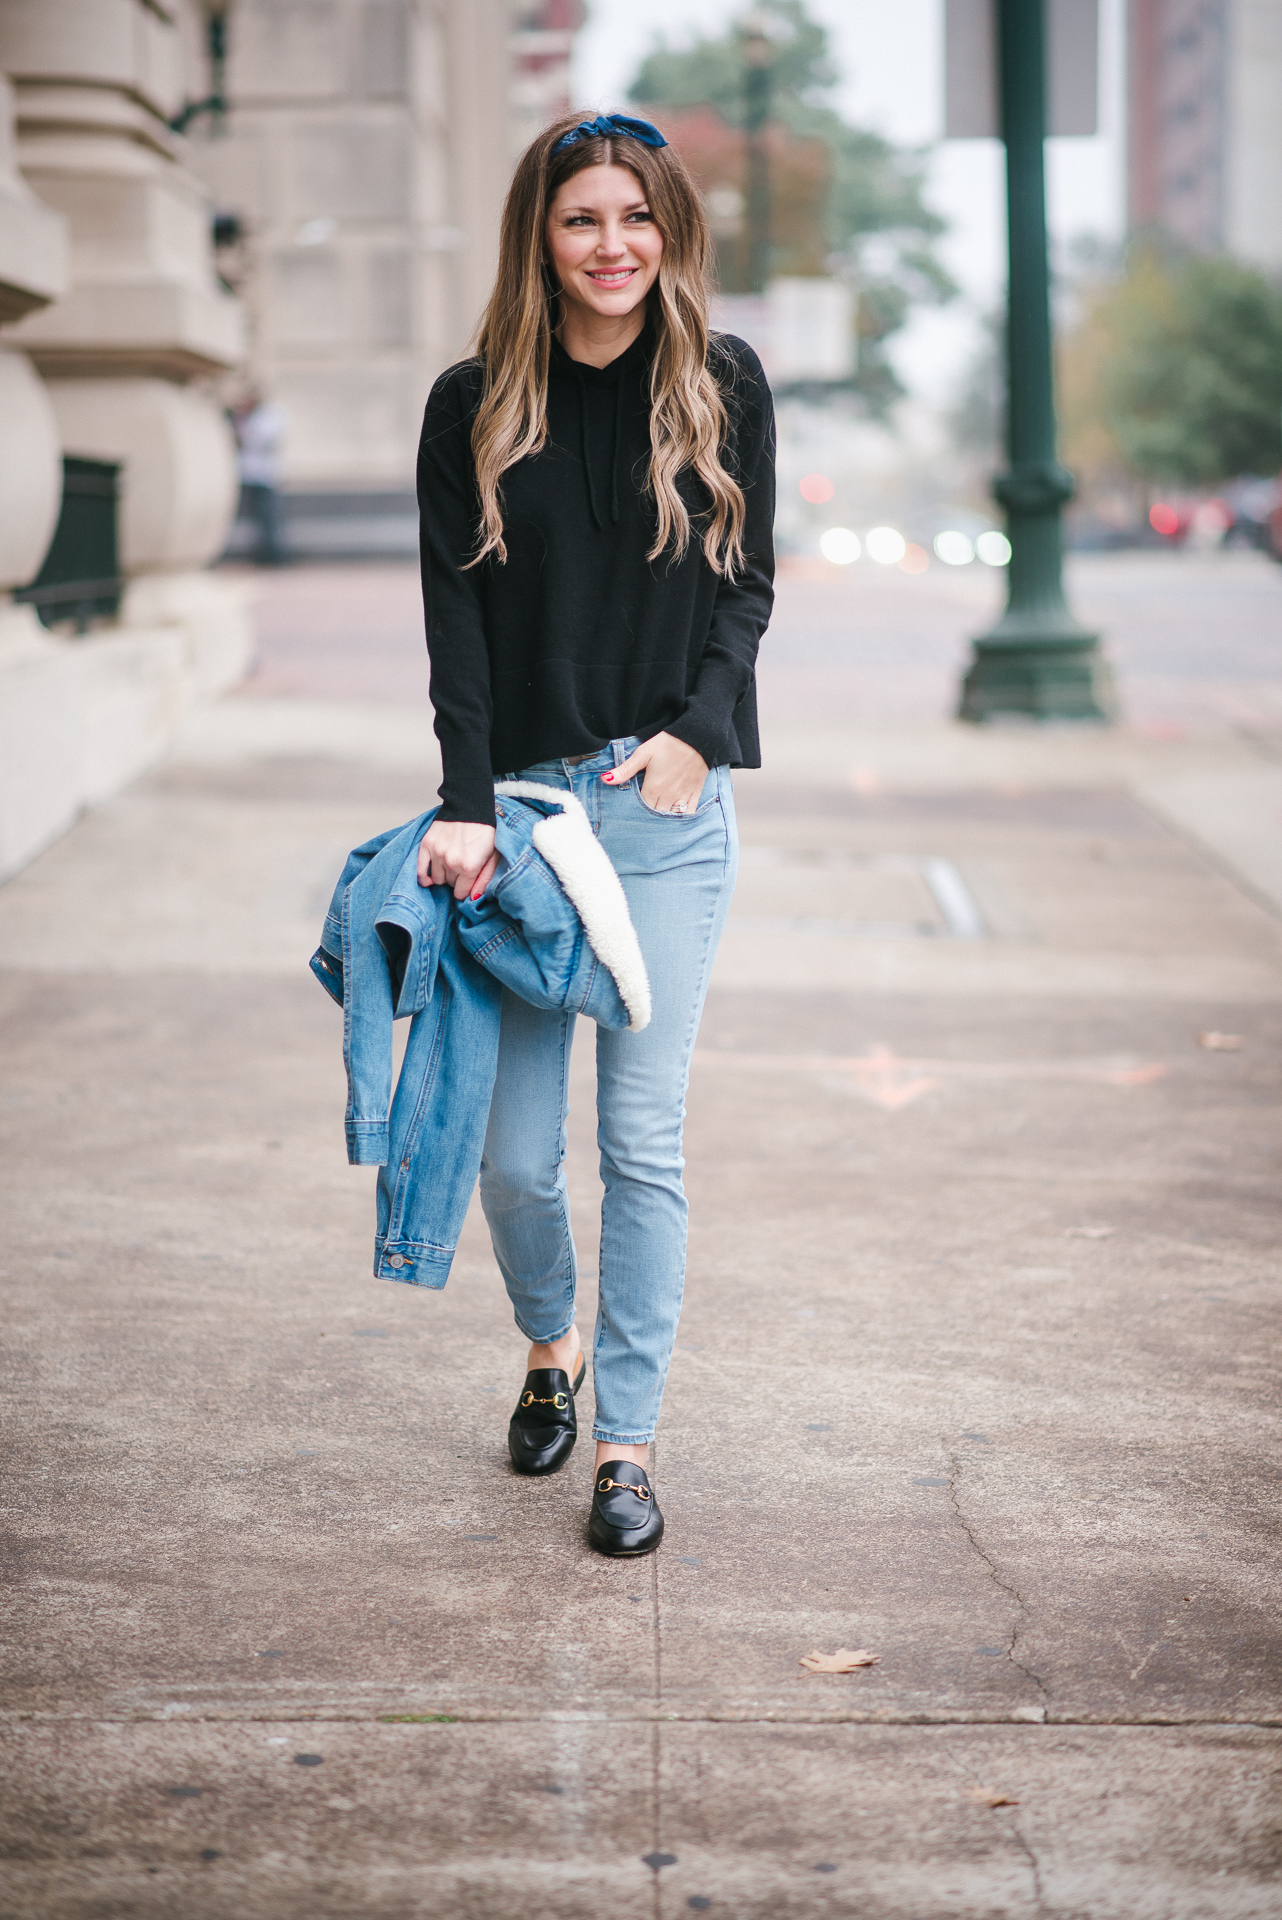 Fashionista wearing Everlane cashmere hoodie and DSTLD